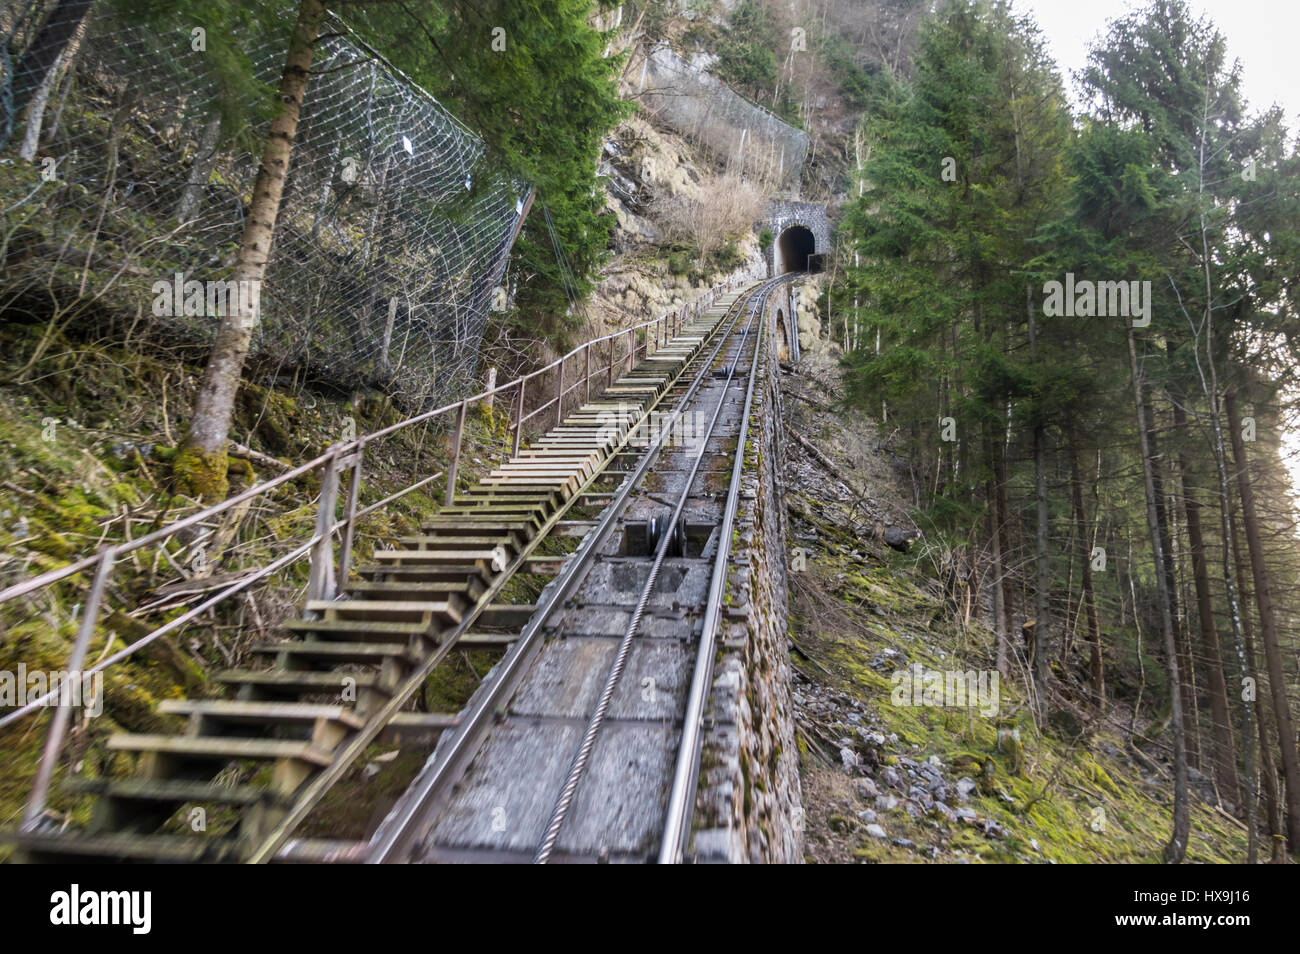 Railway tracks of the old Schlattli-Stoos funicular as seen during the ride. Pulling rope between the tracks. Schlattli, - Stock Image